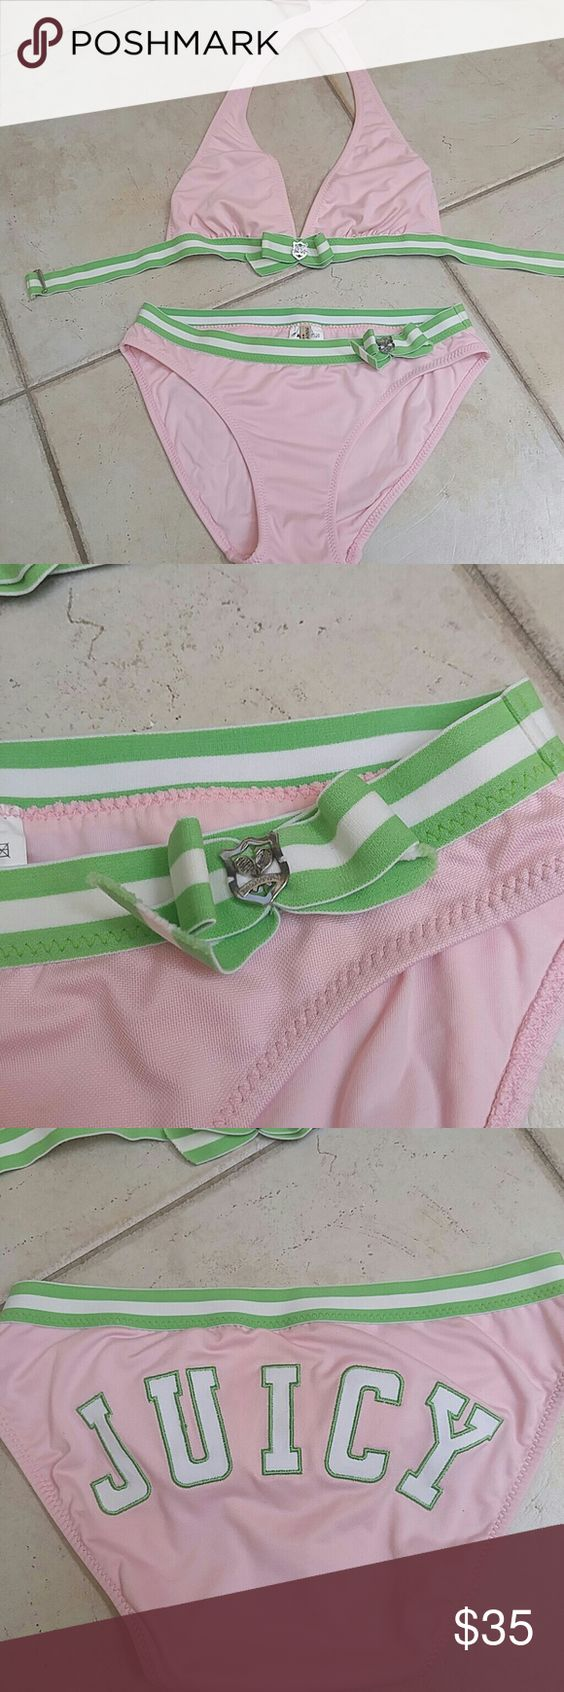 """JUICY COUTURE BIKINI Adorable Juicy Couture Bikini. Size medium. The top ties in the back by the neck and has a clasp around the back to close. bottom slips right on. Light Pink with green and white stripe detail. The front of the bikini top and bikini bottom have """"juicy Couture"""" tennis racket charm. The bikini bottom says """"JUICY"""" on the back. Excellent condition! Made of 89% Polyester and 11% Spandex.I PROVIDE 10% off if you BUNDLE 3 ITEMS and you only pay ONE SHIPPING PRICE! Juicy Couture…"""